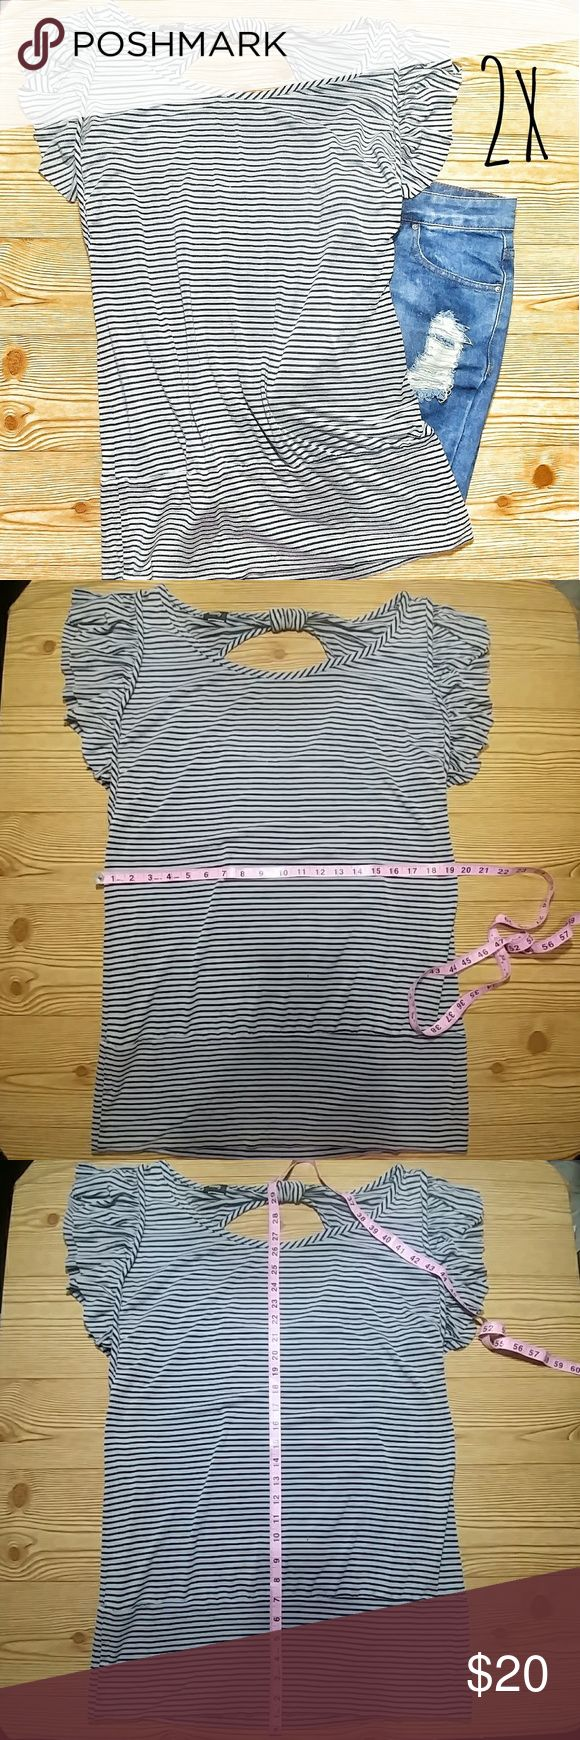 Vanity Black Gray Stripe Flowy Tee(2×) Like new great condition Offeres welcome, please ask any questions you may have. May qualify for discount shipping with offers. Cant read size on tag, but im guessing its a least a 2x. Very stretchy. Soft material. Open back area. Ruffles on shoulders. SHORTS ARE FOR SALE IN DIFFERENT LISTING. Vanity Tops